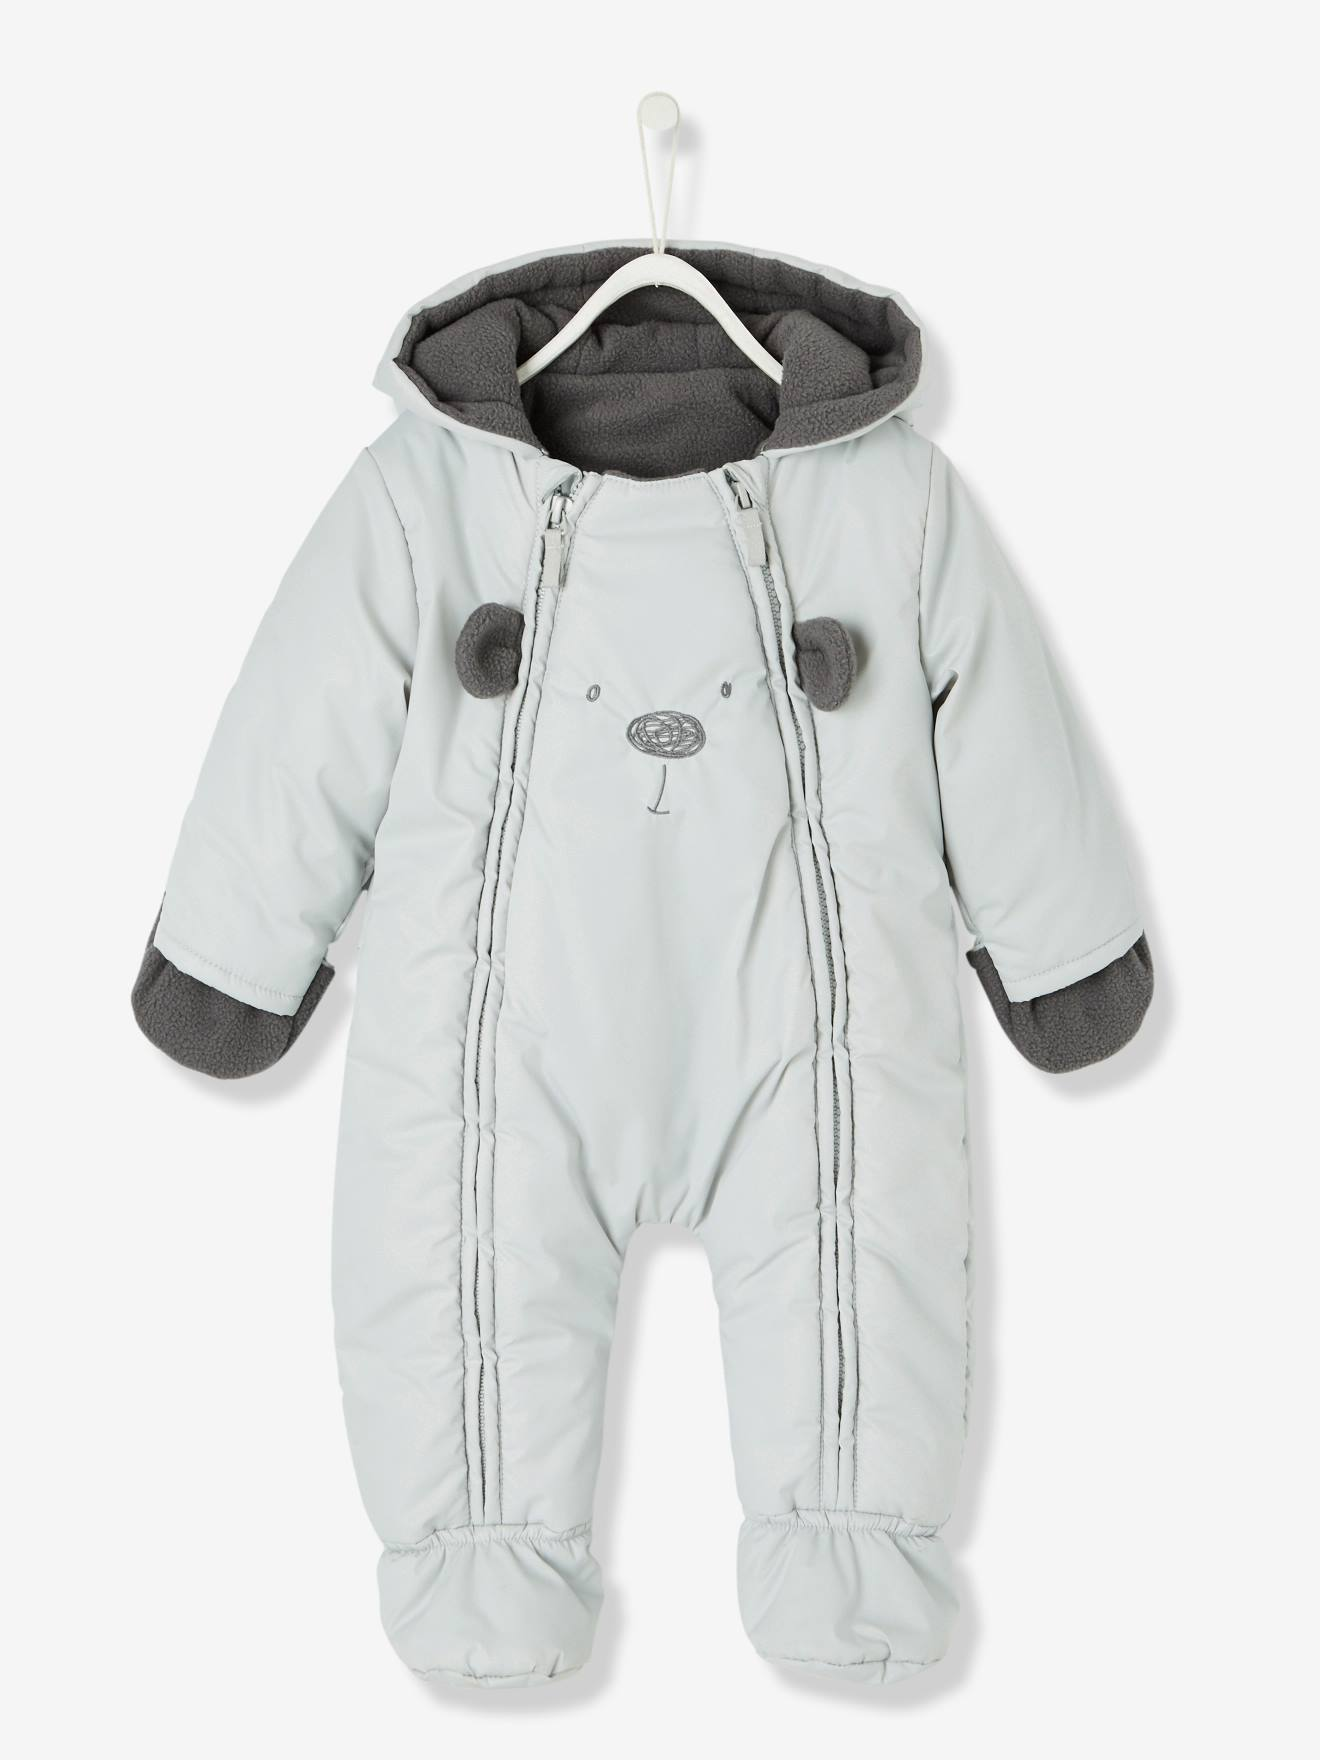 Girls' Clothing (newborn-5t) Clothing, Shoes & Accessories Lovely 0-3m All In One Snowsuit